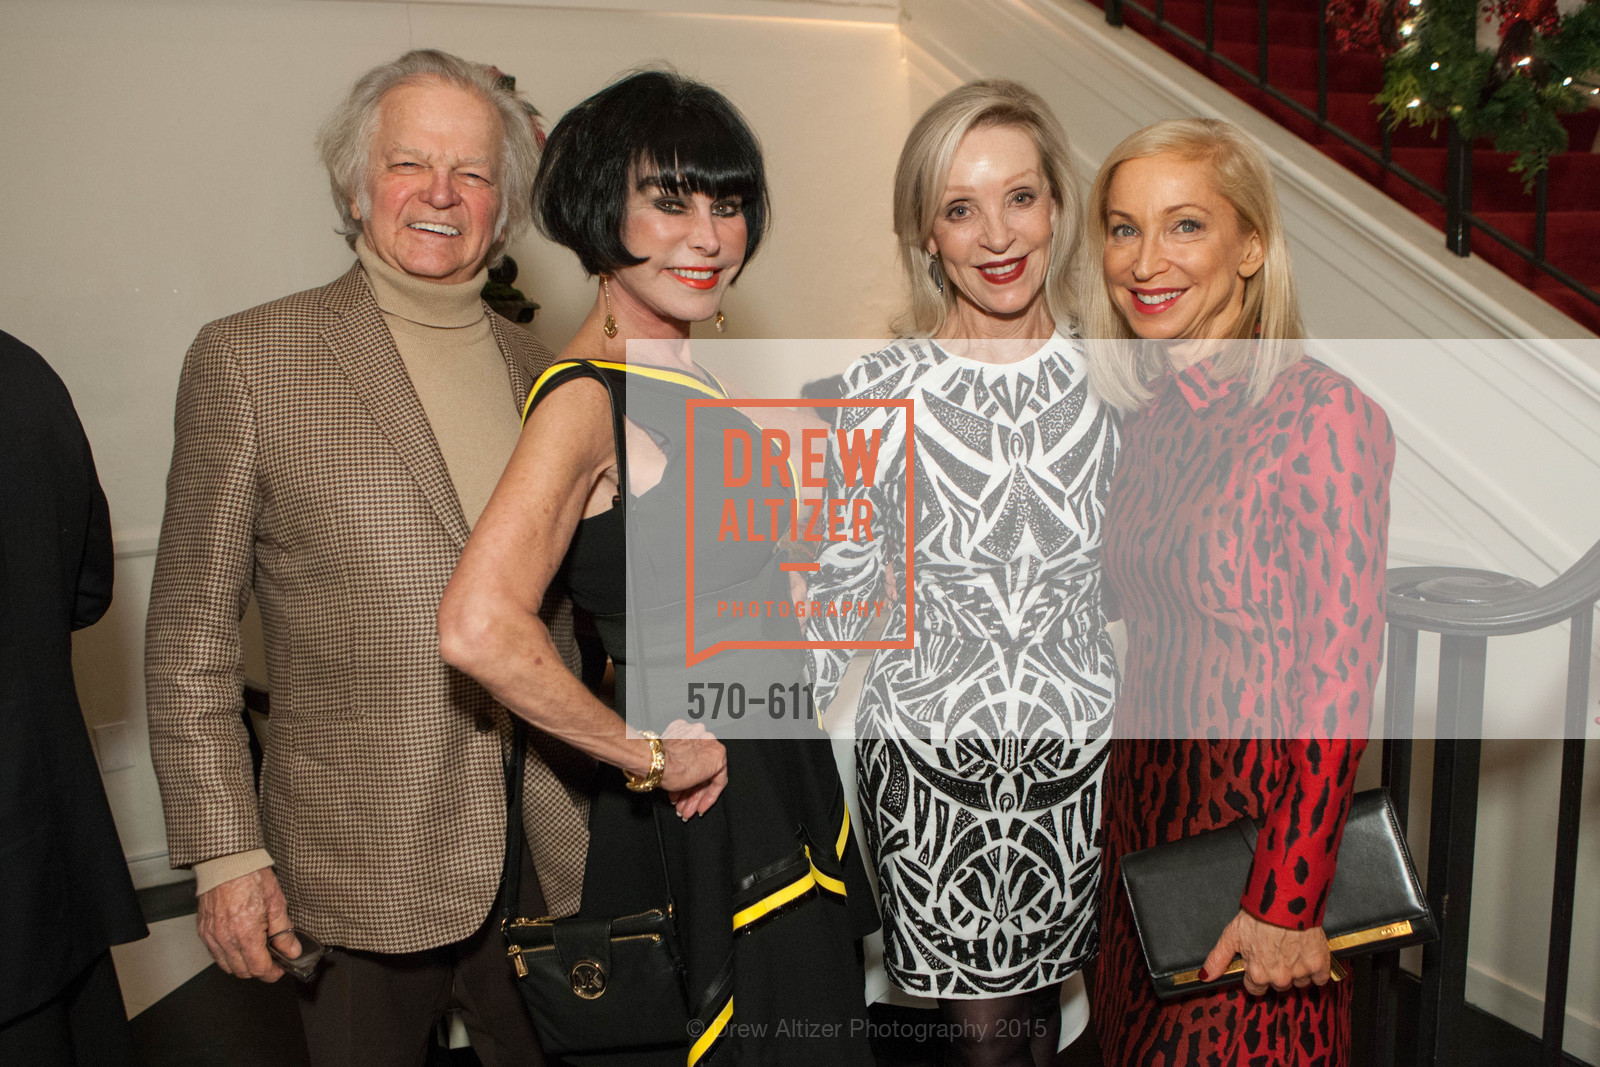 Michael Cabak, Marilyn Cabak, Barbara Brown, Shelley Gordon, San Francisco Ballet Auxiliary's Gala Launch party hosted by La Perla., VILLA TAVERA. 27 HOTALING PLACE, December 1st, 2015,Drew Altizer, Drew Altizer Photography, full-service agency, private events, San Francisco photographer, photographer california